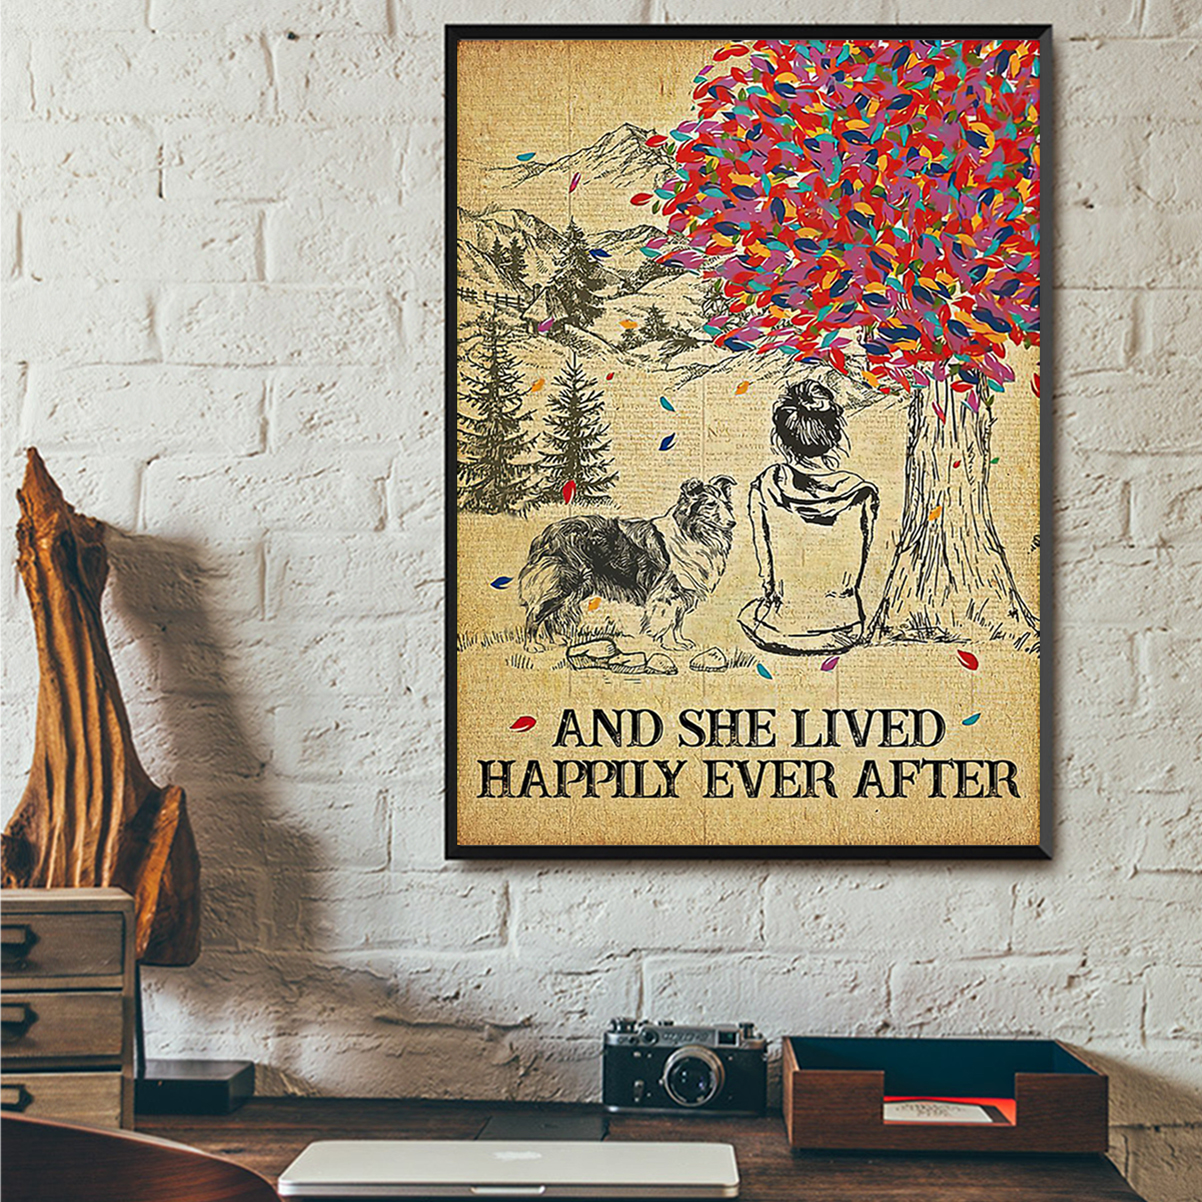 Shetland sheepdog and she lived happily ever after poster A1